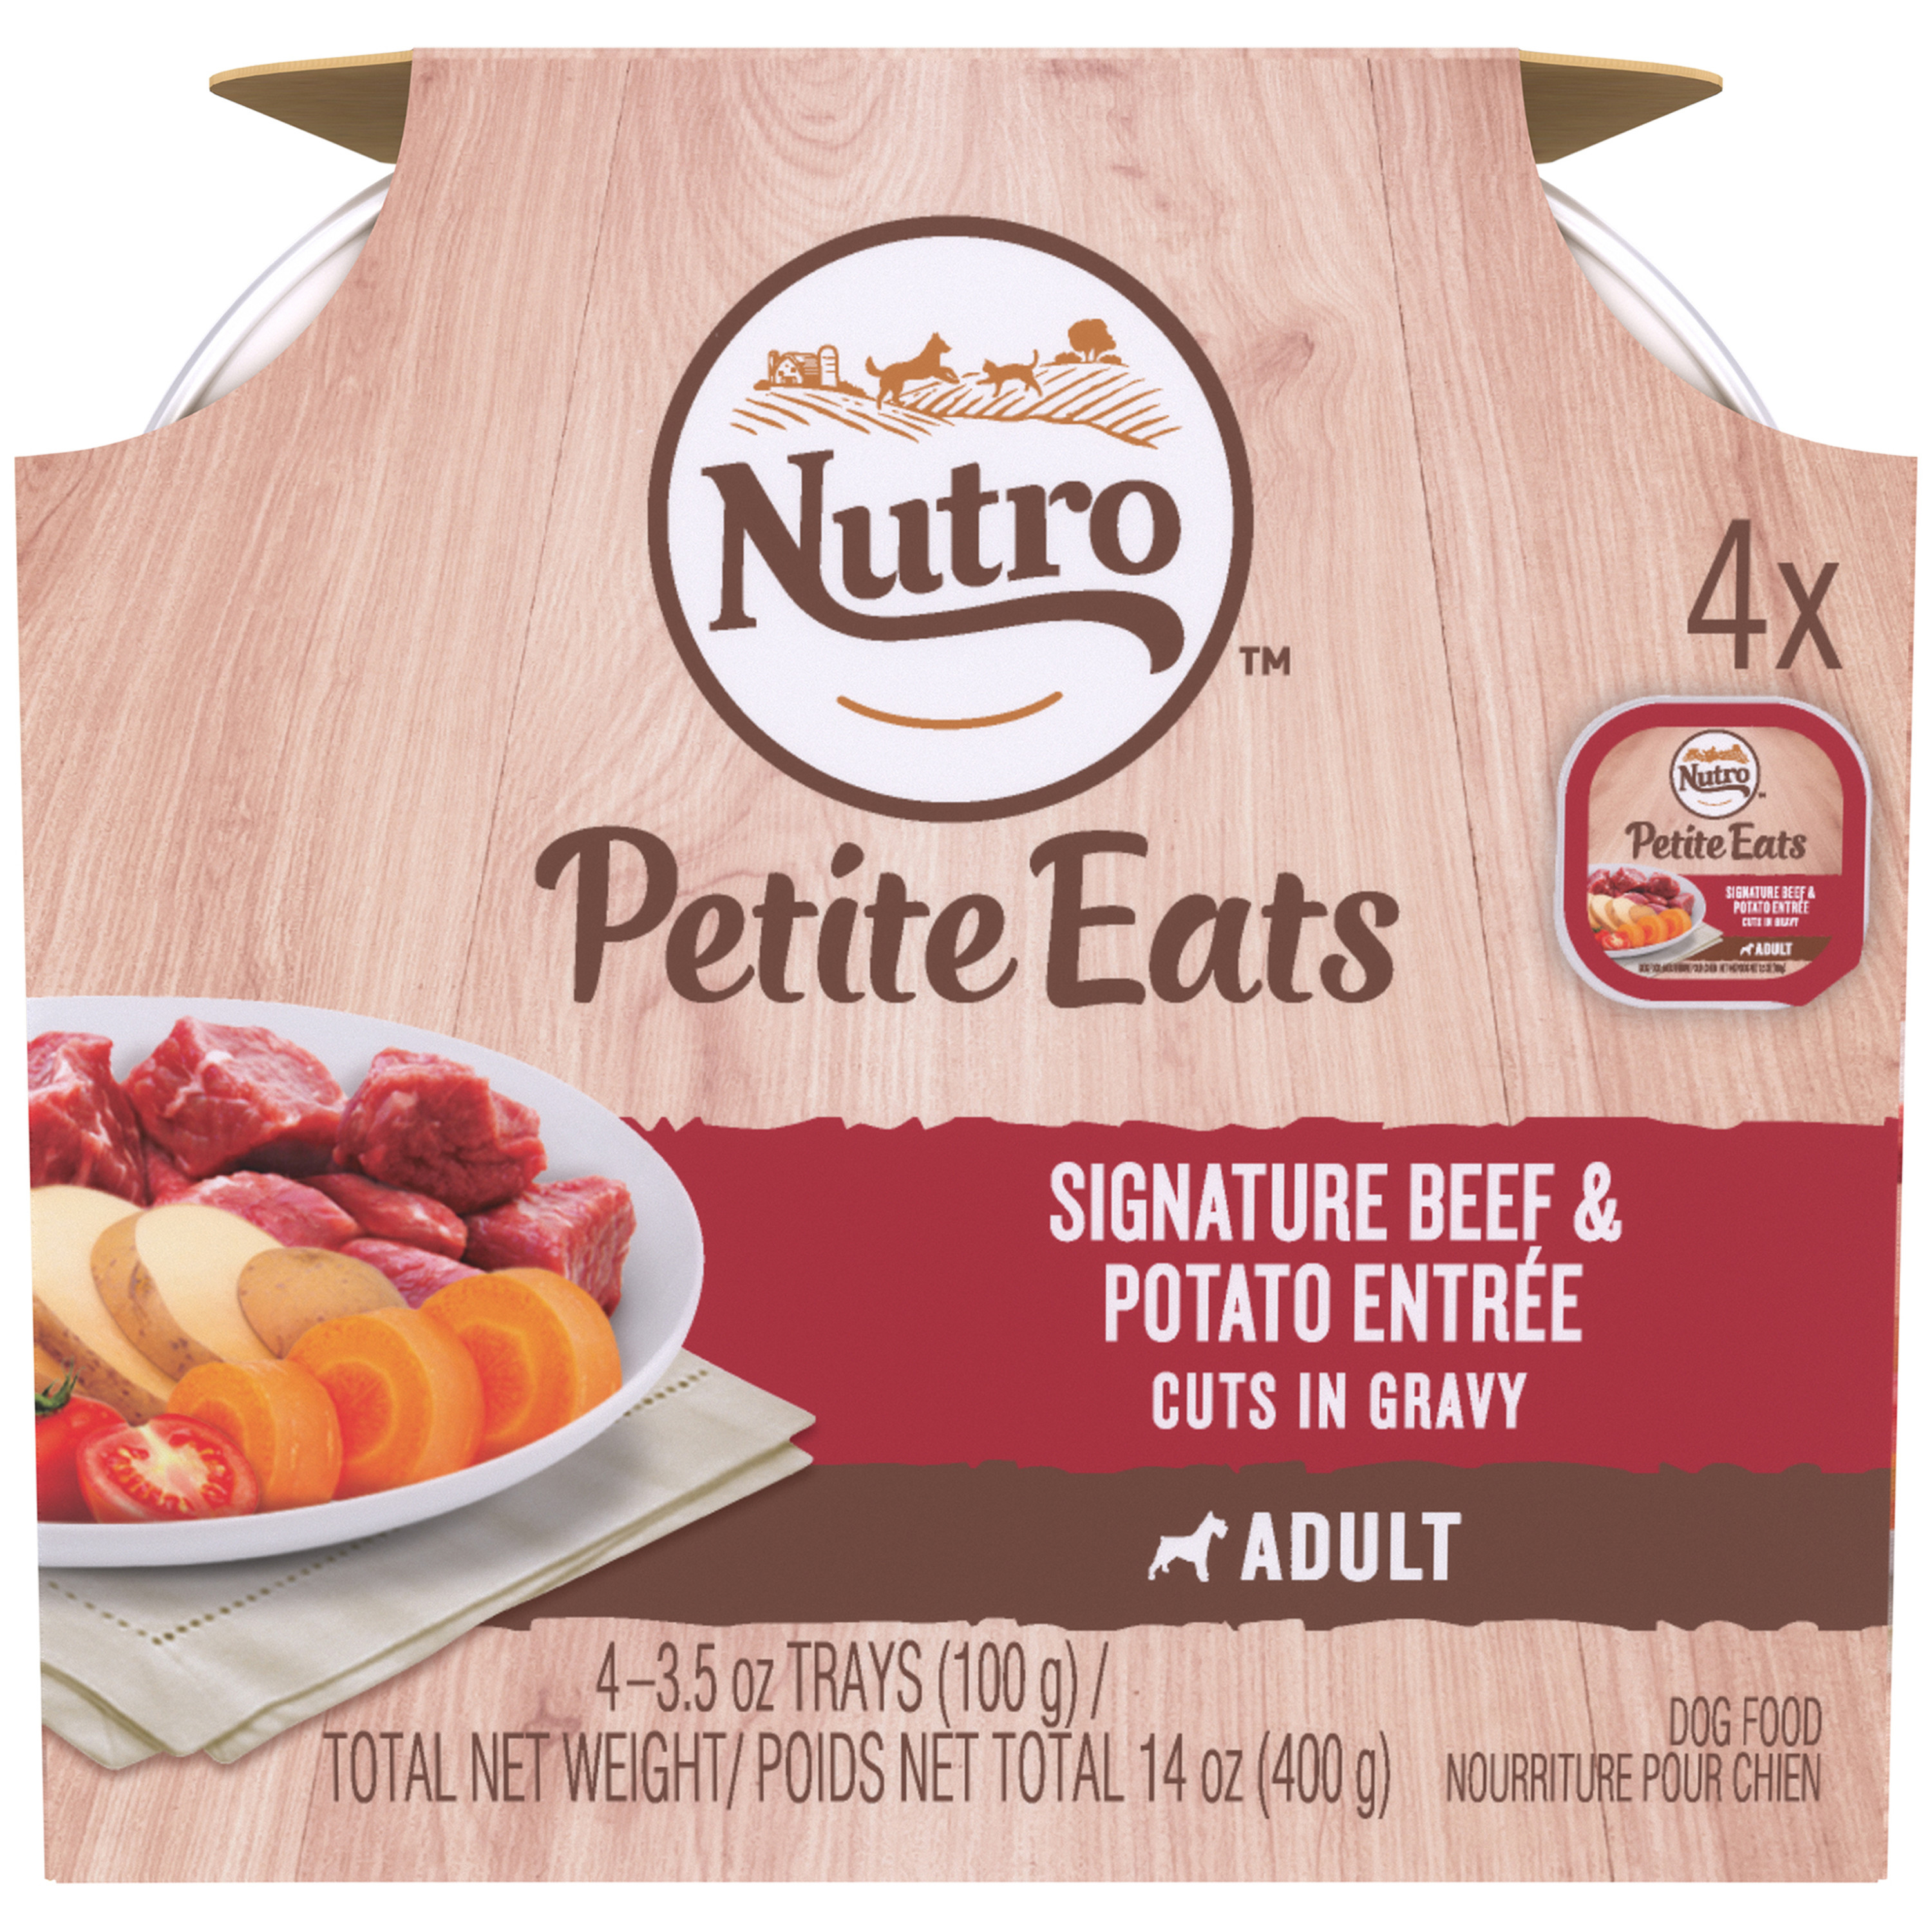 Nutro Petite Eats Wet Dog Food Multipack, Signature Beef & Potato Entrée Cuts in Gravy, 3.5 Oz Trays (Pack of 4)